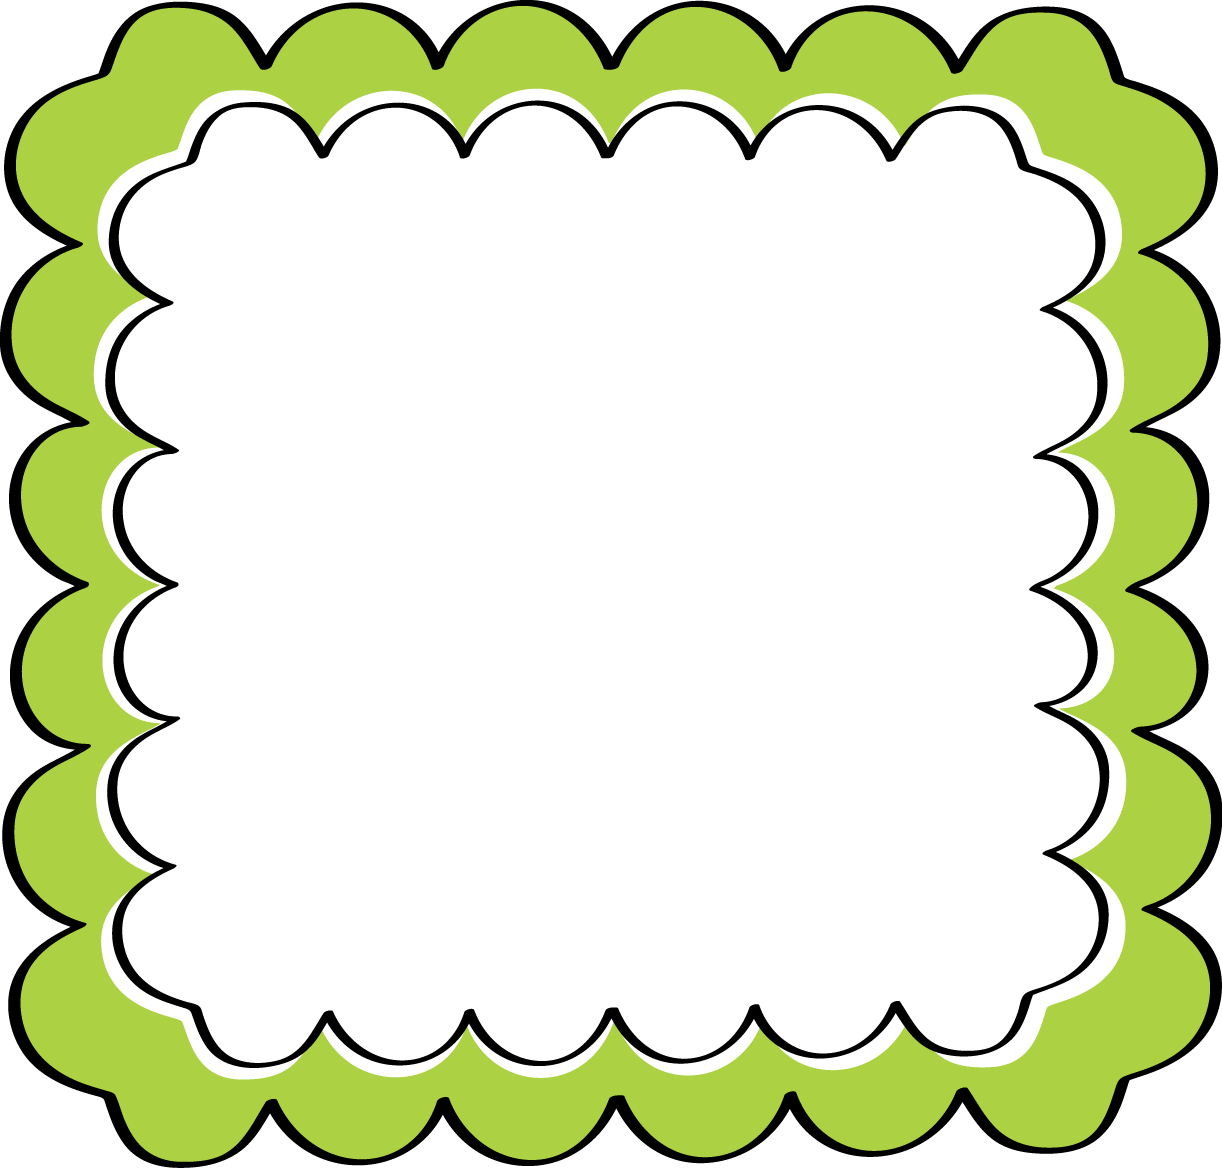 Green Scalloped Frame  green and black scalloped frame with an inner